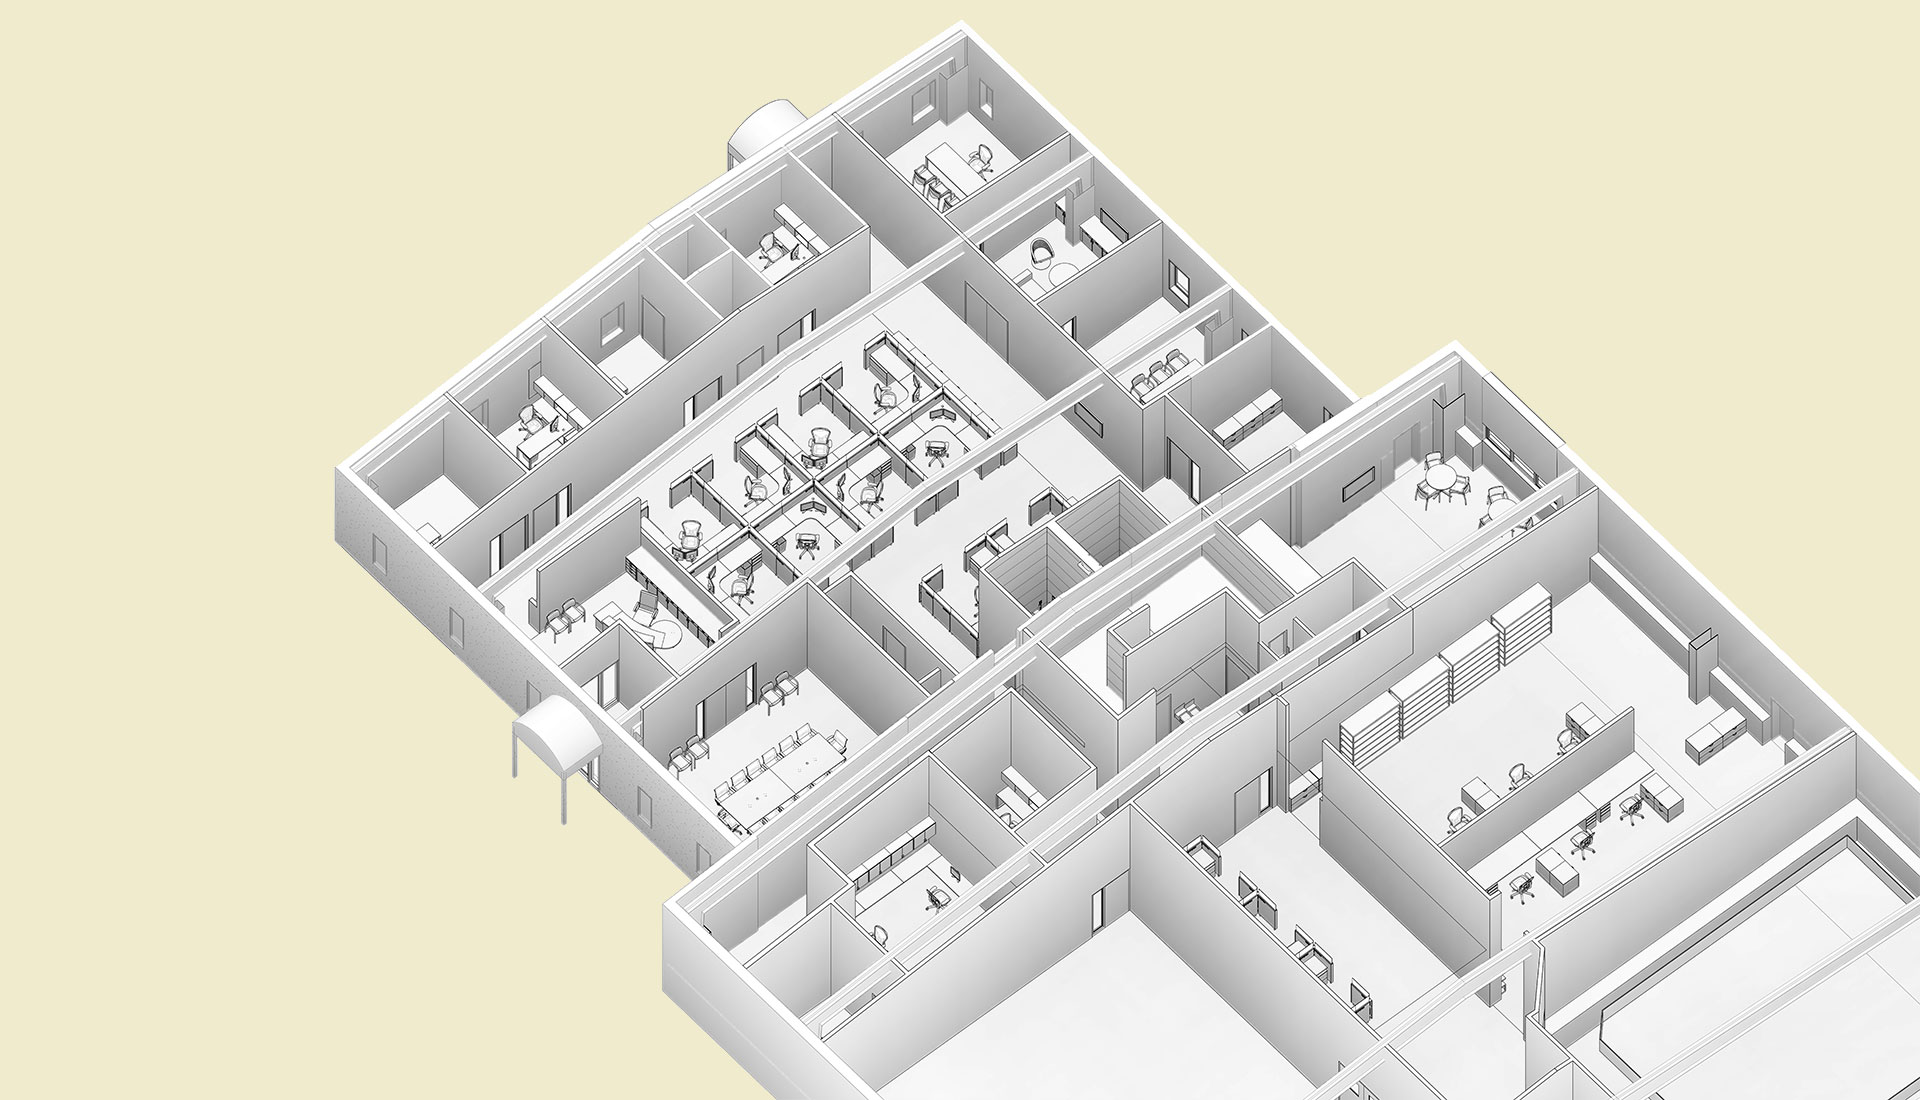 Sectional-View_Architectural-Model_Industrial-Project_Alloy-Specialities_BIM-Modeling-by-United-BIM